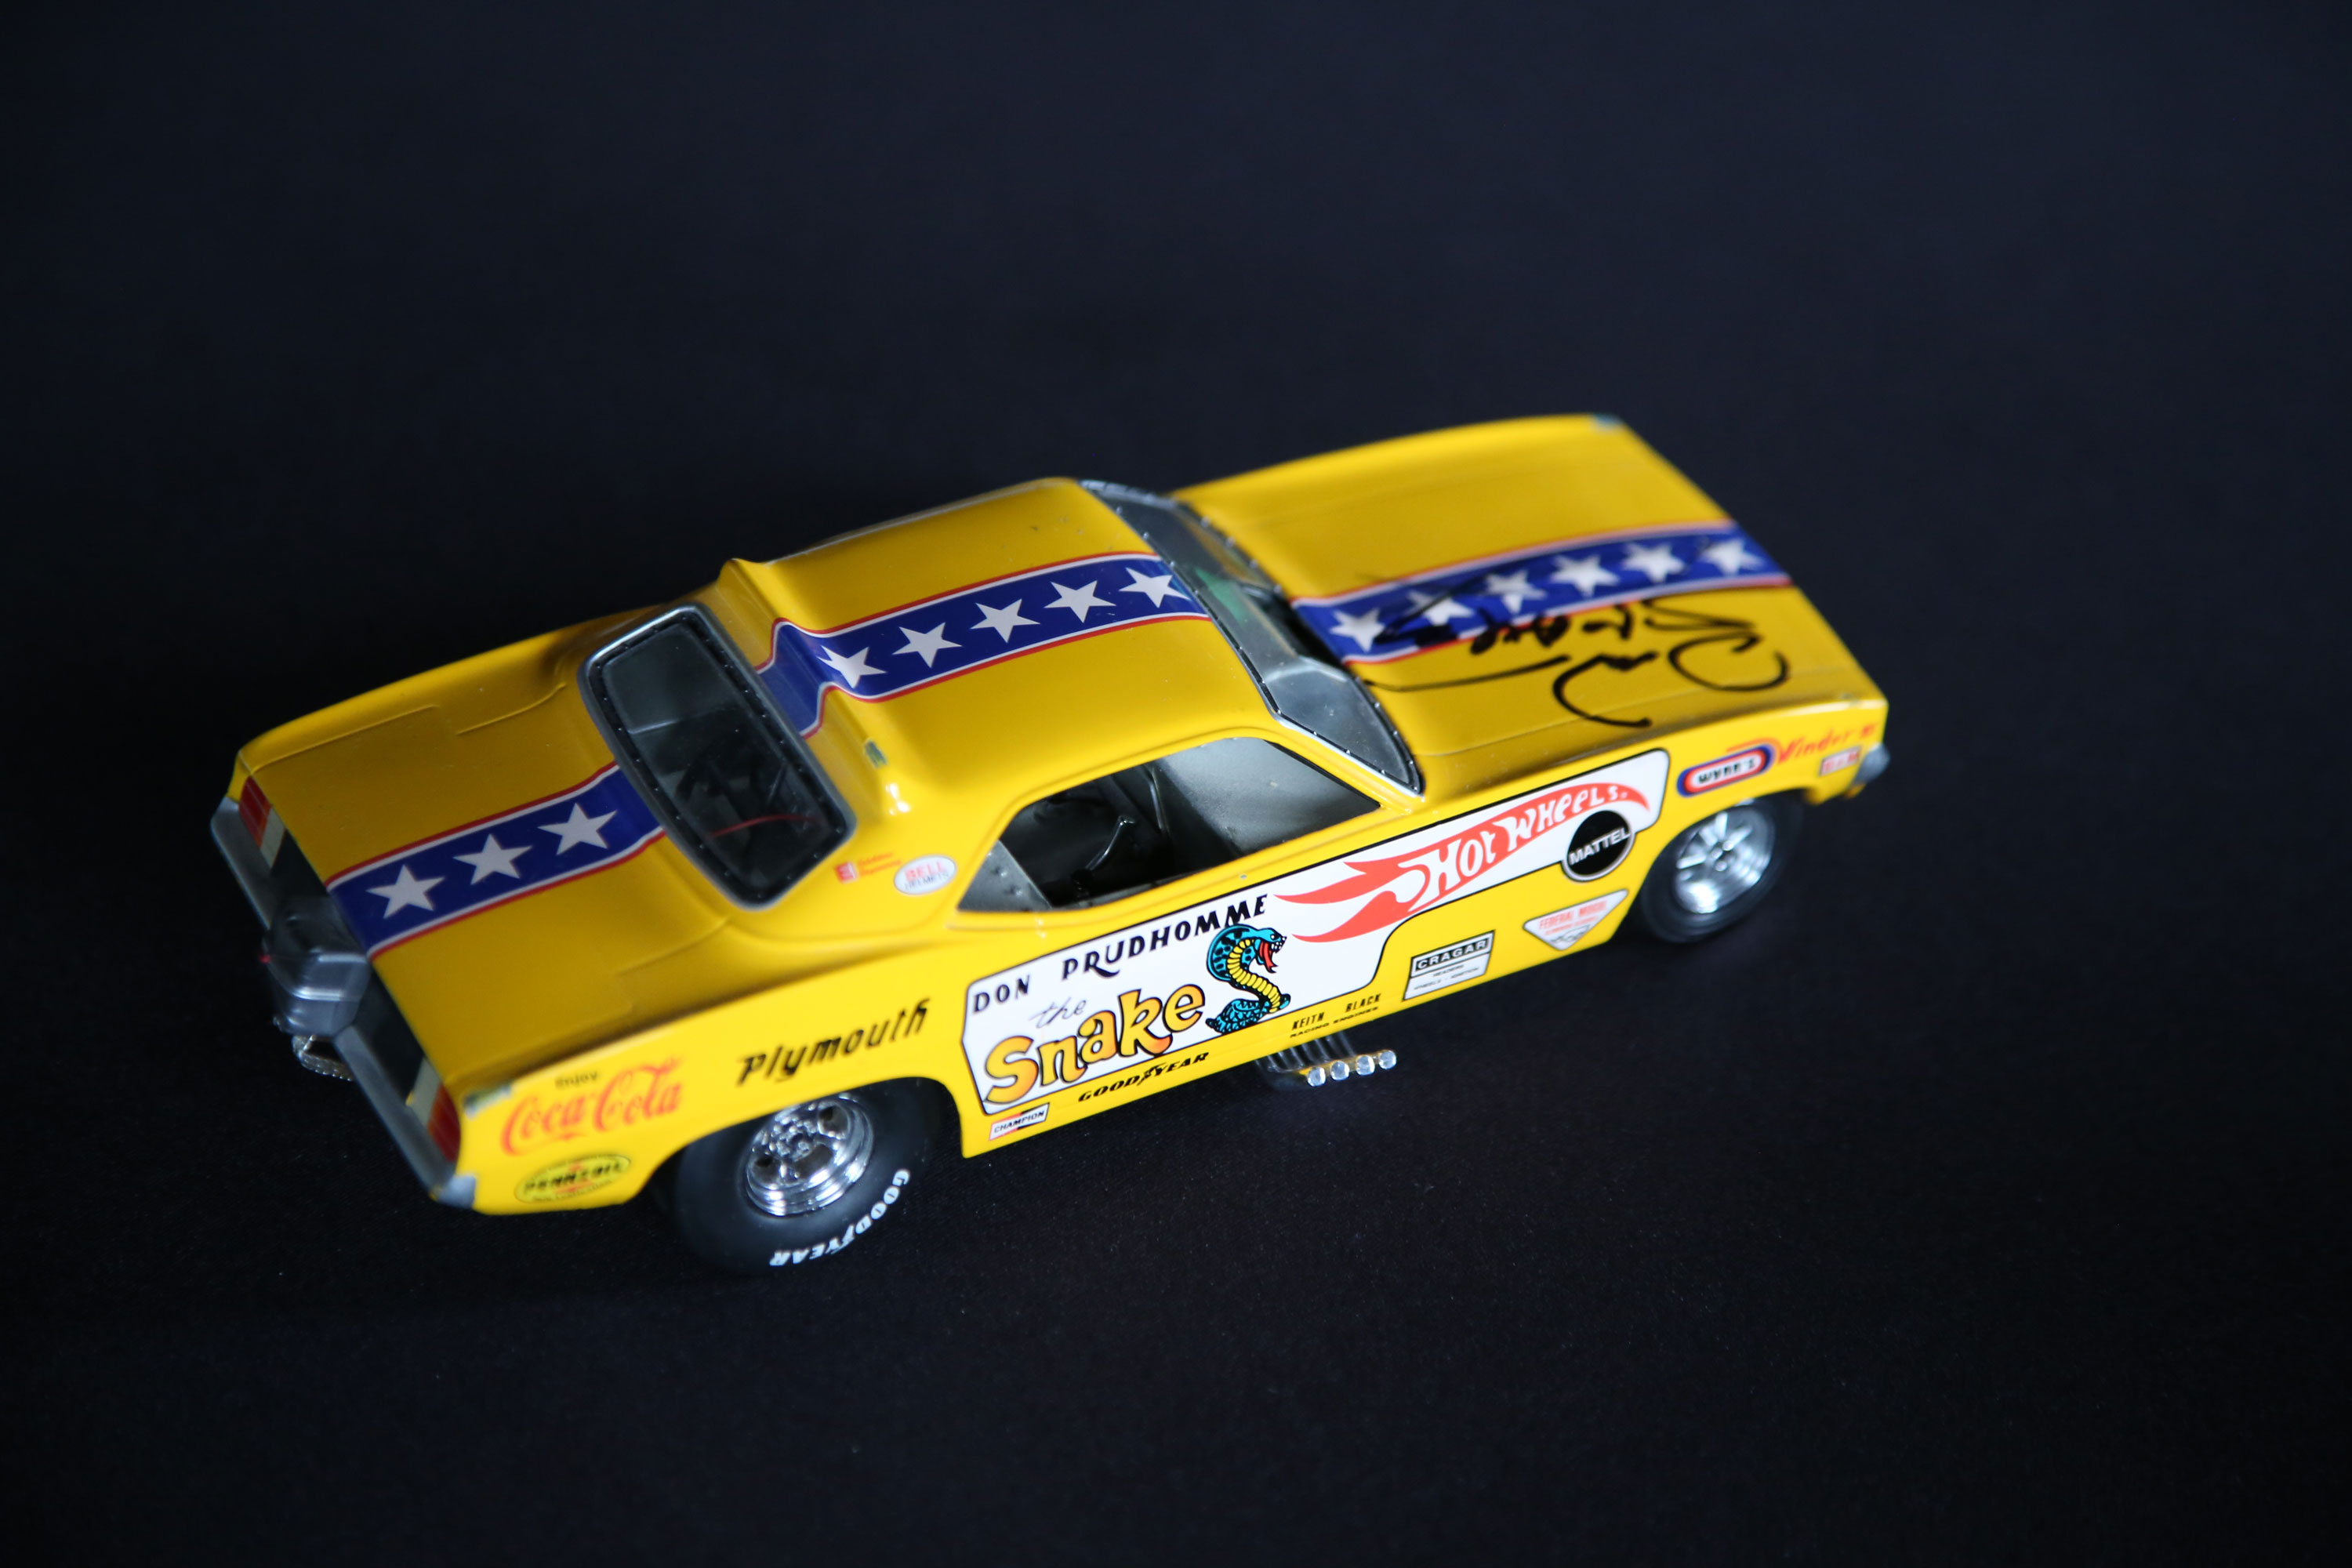 The model that made it happen. The 1970 Mattel Hot Wheels sponsorship of the Snake and Mongoose Funny Cars changed the sport of drag racing forever, moving it from grassroots with small industry sponsors to a major league, big-money, national sport.